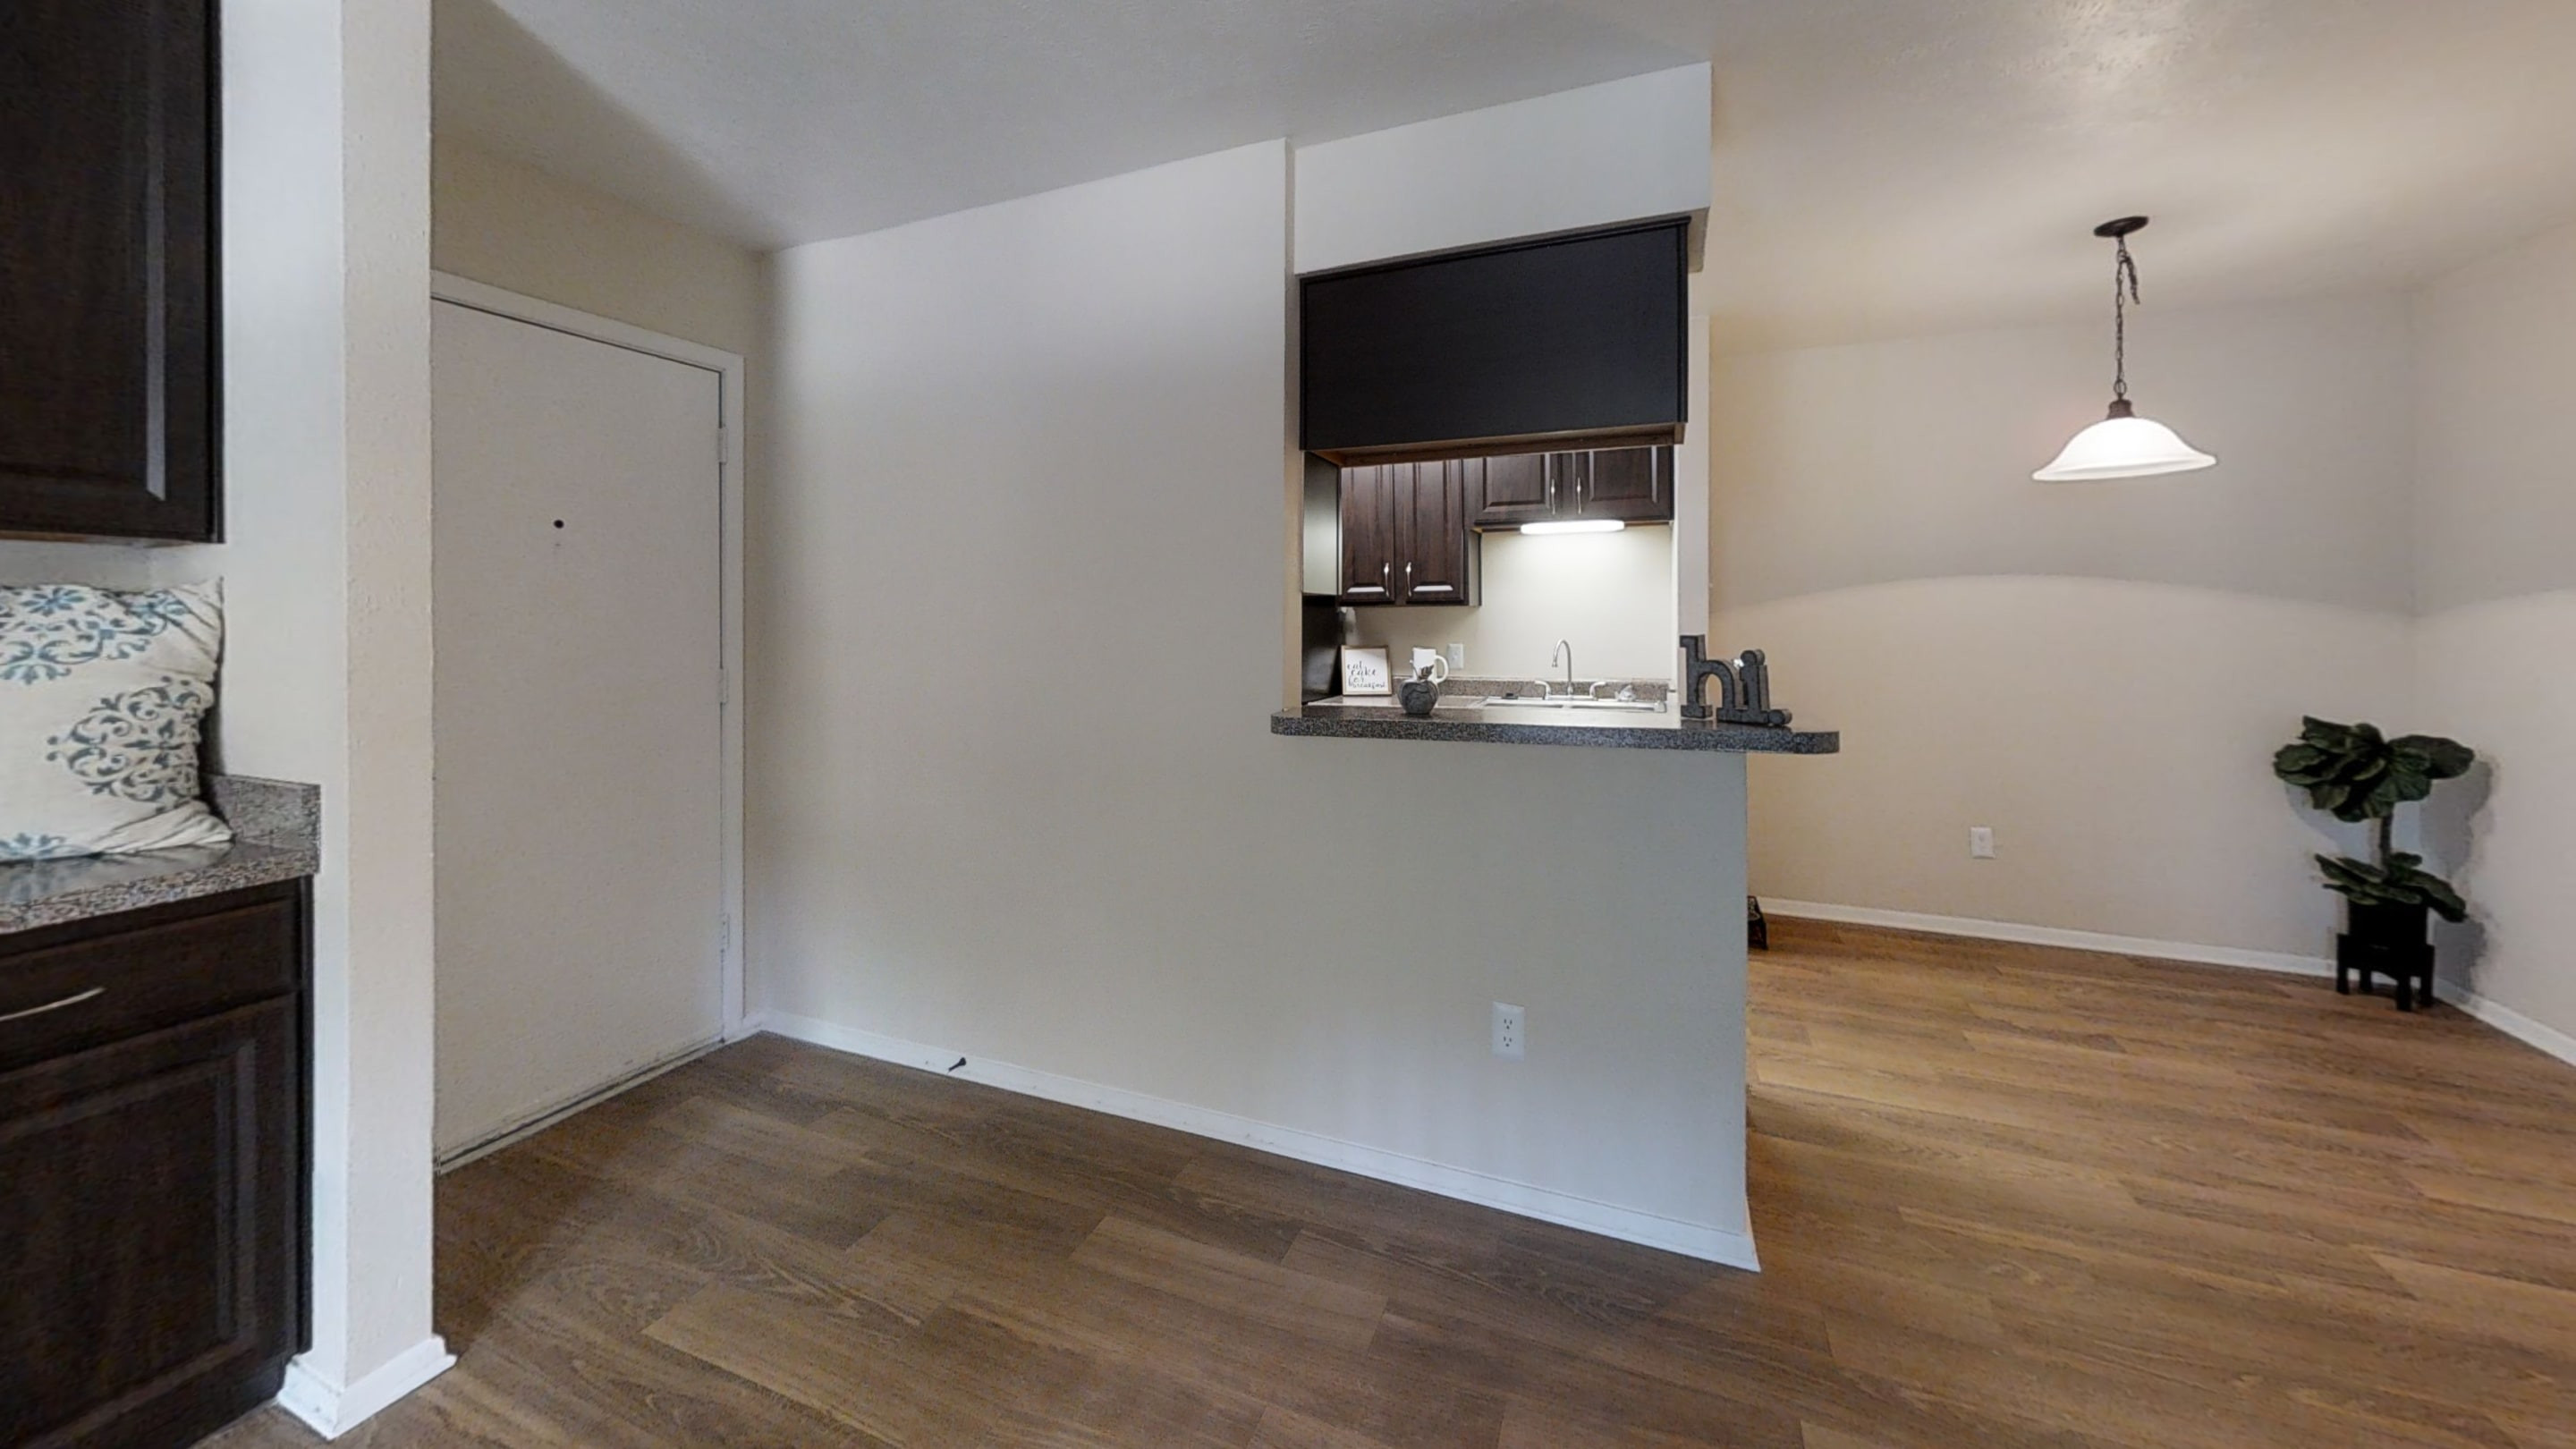 hurst hardwood flooring reviews of 100 best apartments in fort worth tx with pictures for 9990ae1e7c06fcd90d1b3d7f07839569